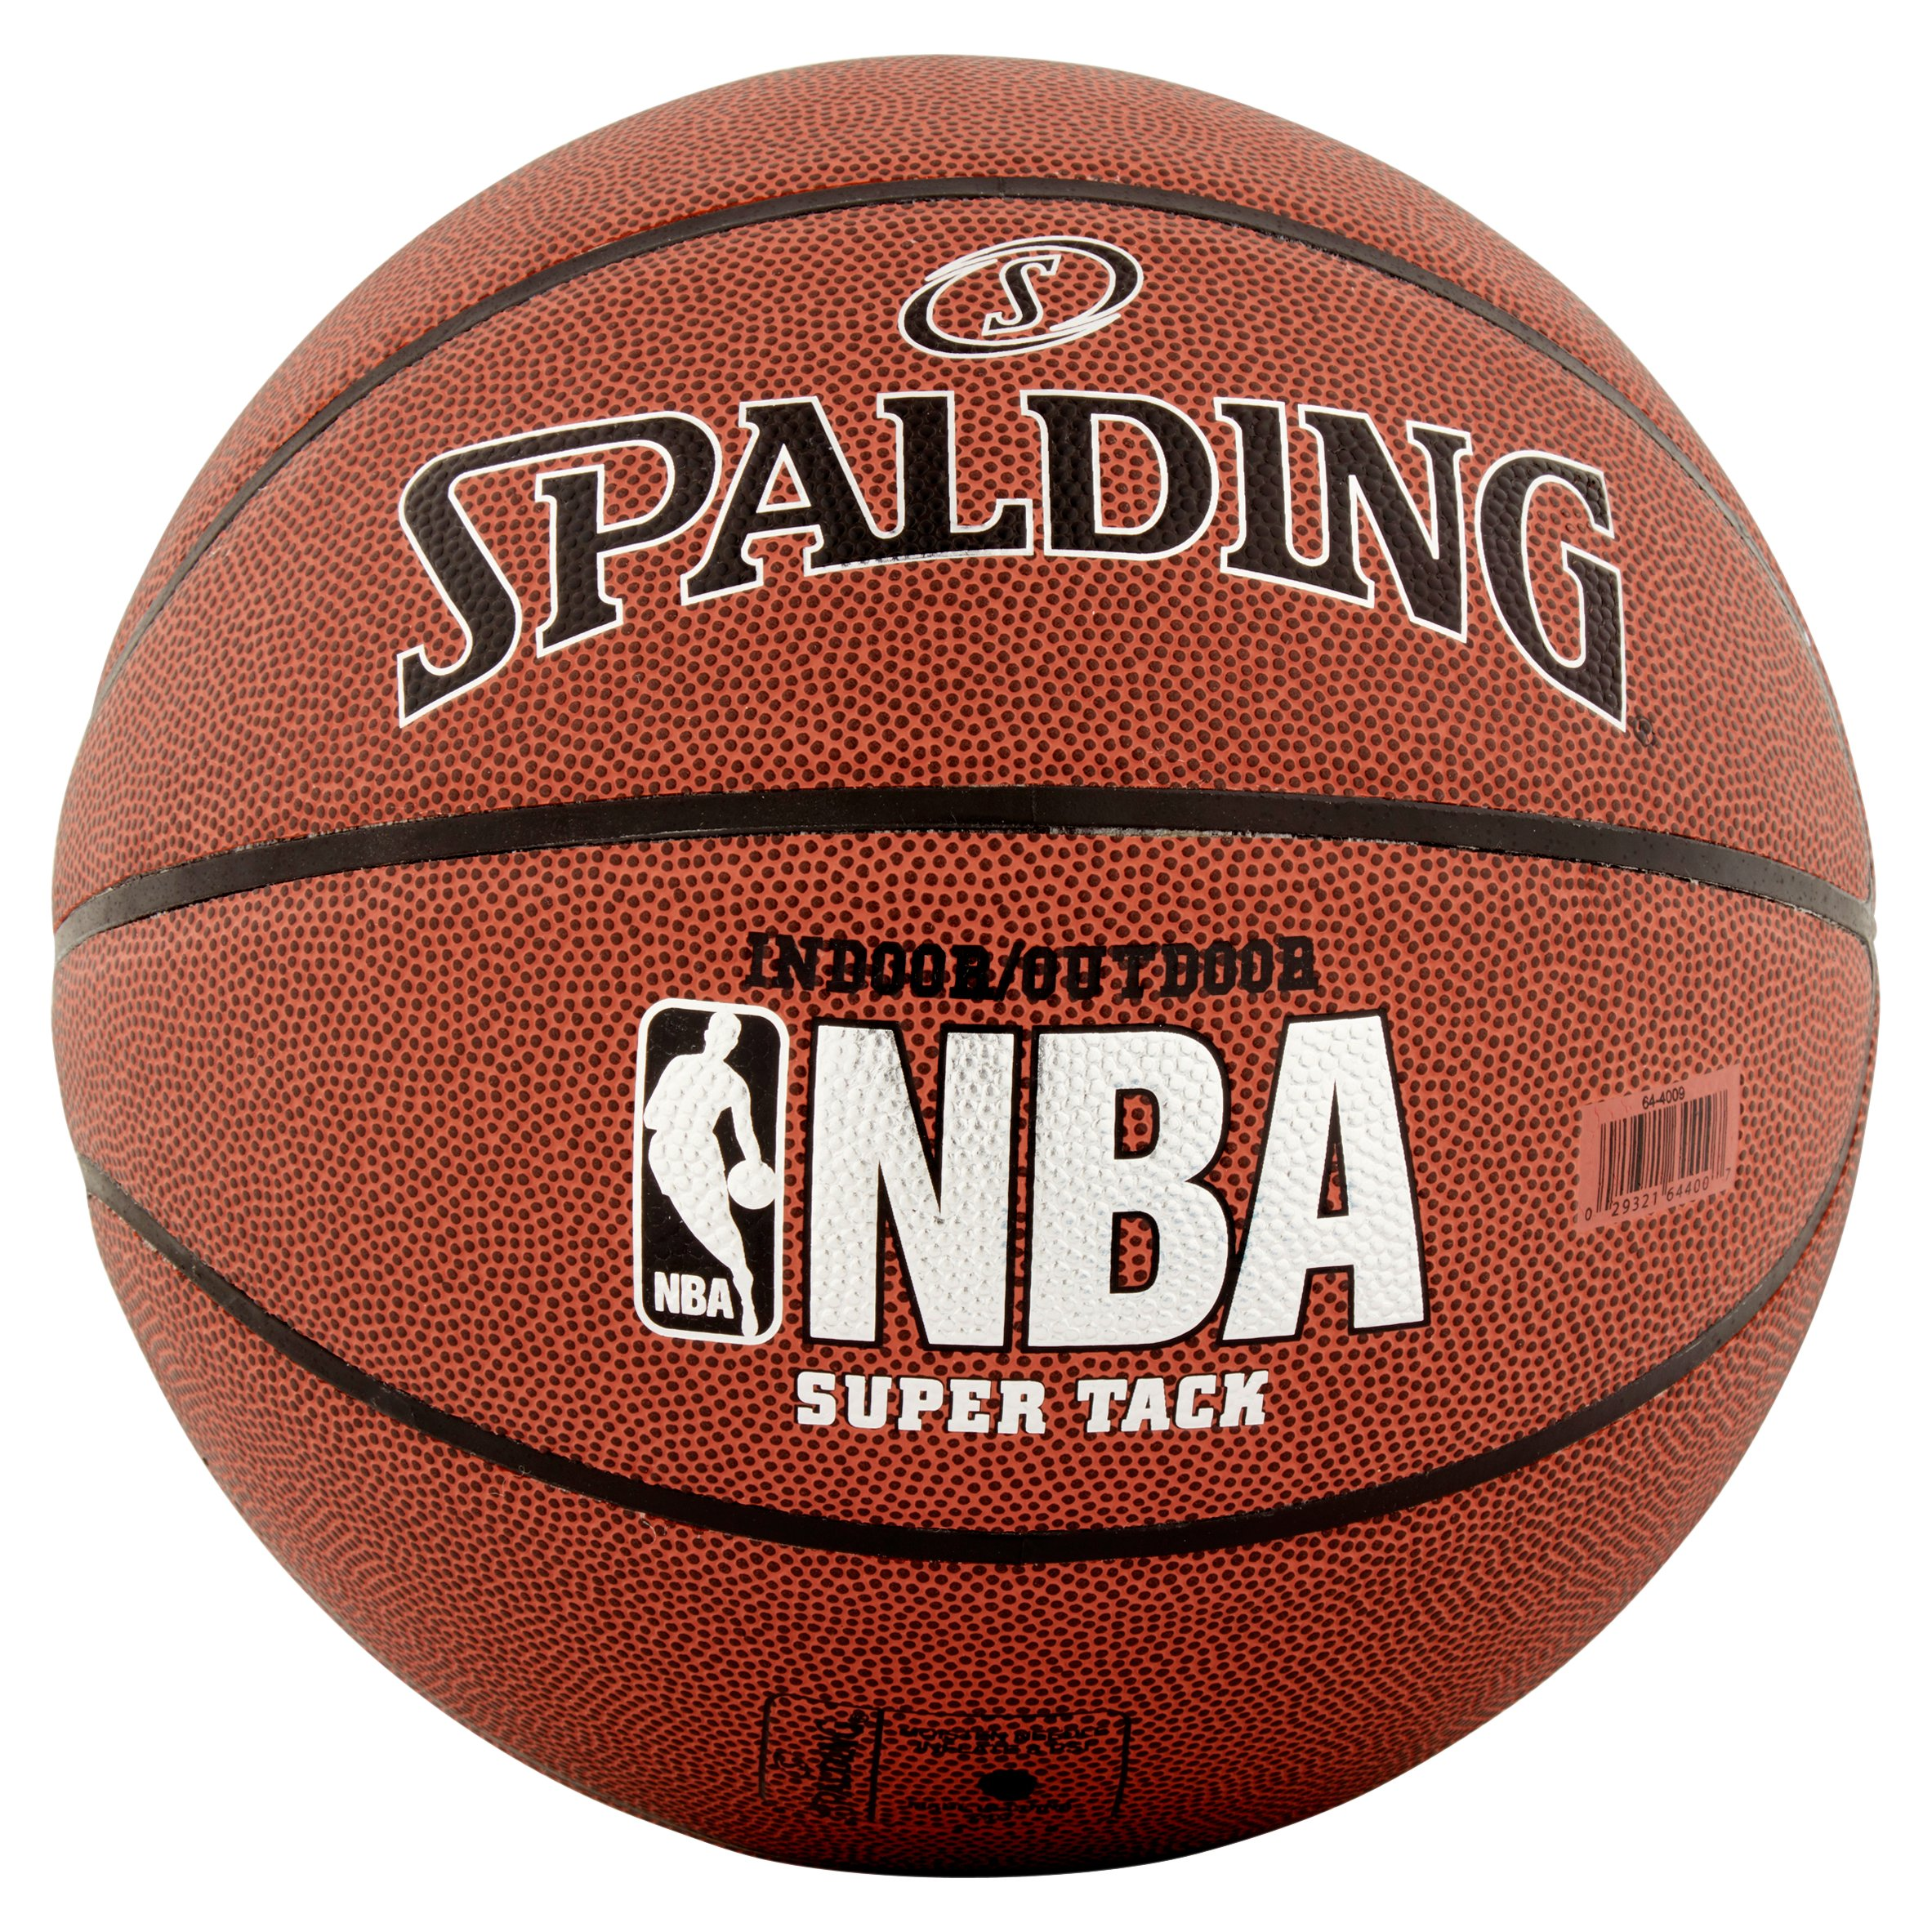 Spalding nba super tack 29 5 indoor outdoor basketball official size 7 29 5 ebay - Spalding basketball images ...